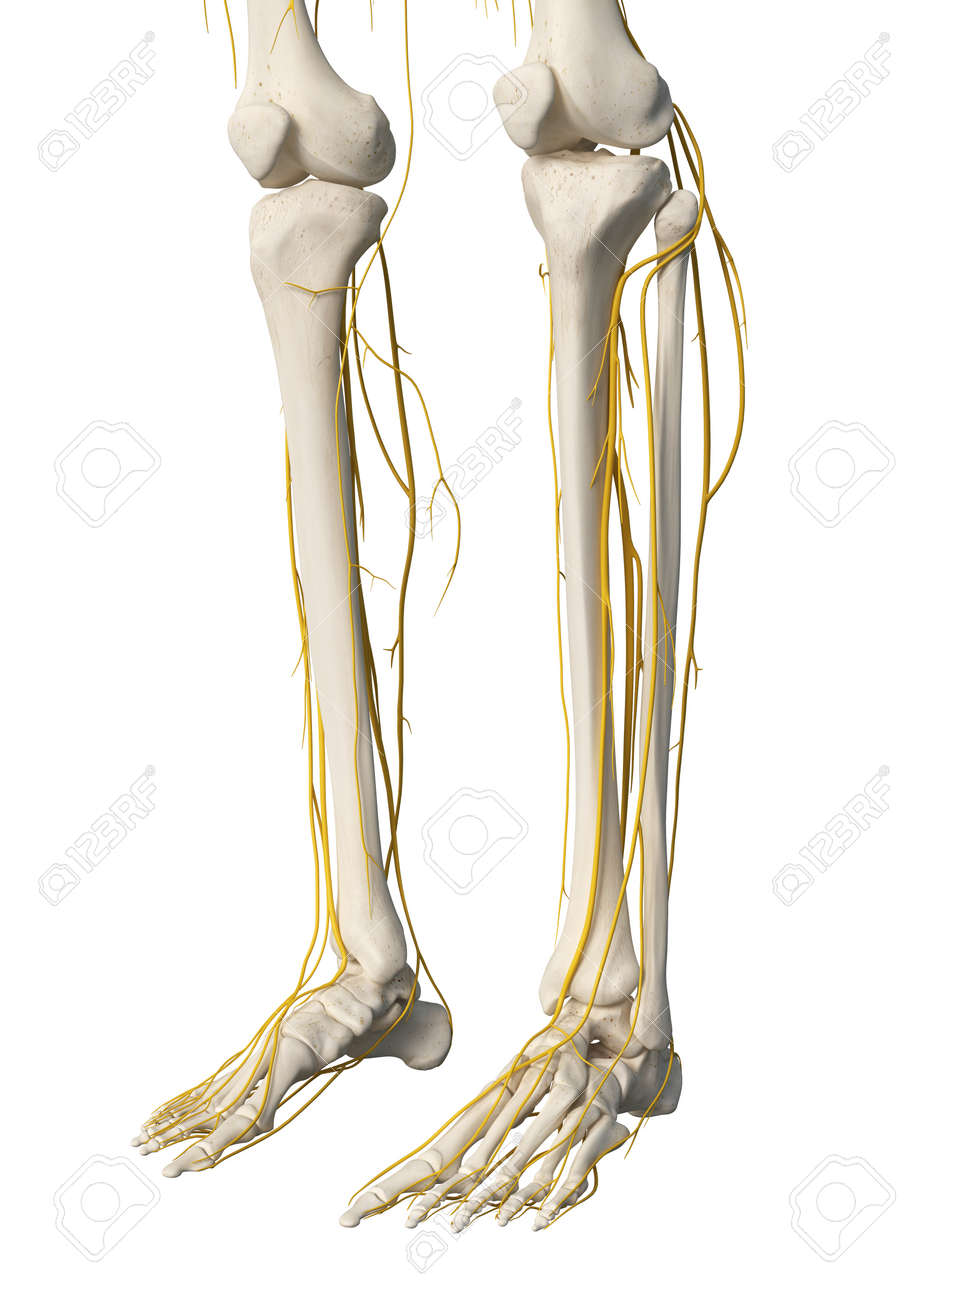 3d Rendered Medically Accurate Illustration Of The Leg Nerves Stock